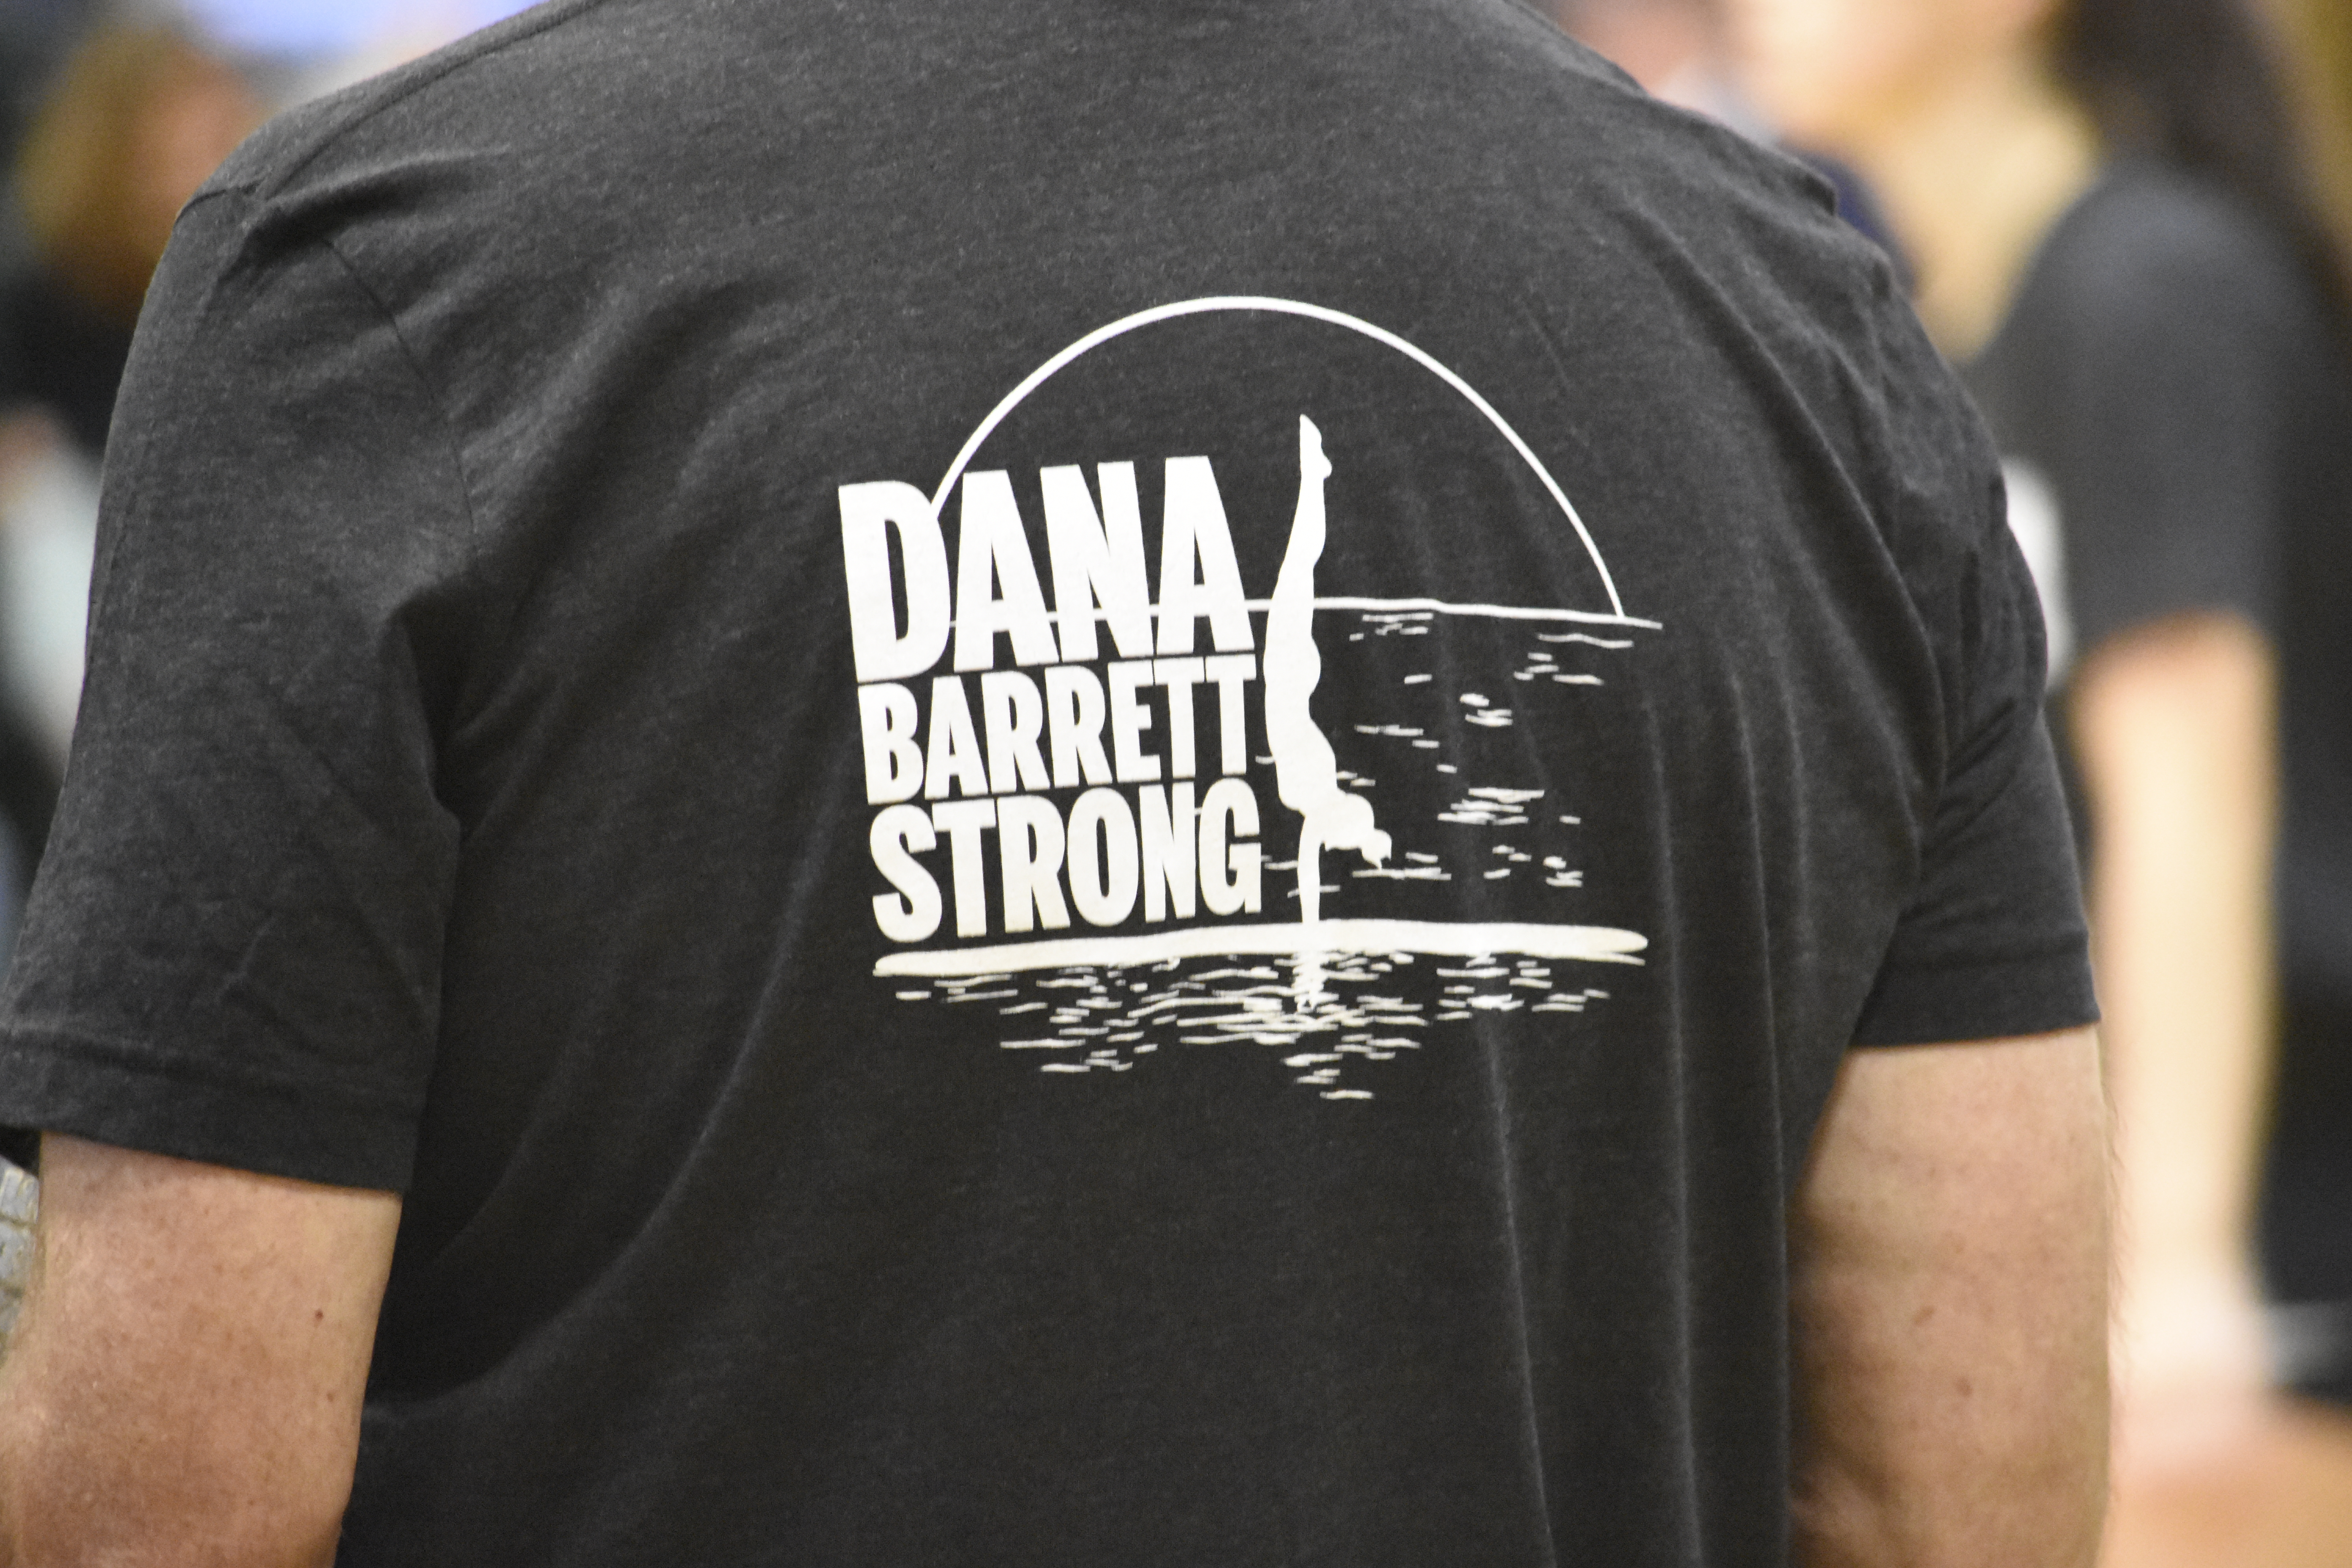 Friday's game was in support of Dana Barrett, a Westhampton Beach graduate who suffered a C2 fracture of her spine in a pool accident, resulting in paralysis from the neck down and the inability to breathe on her own.